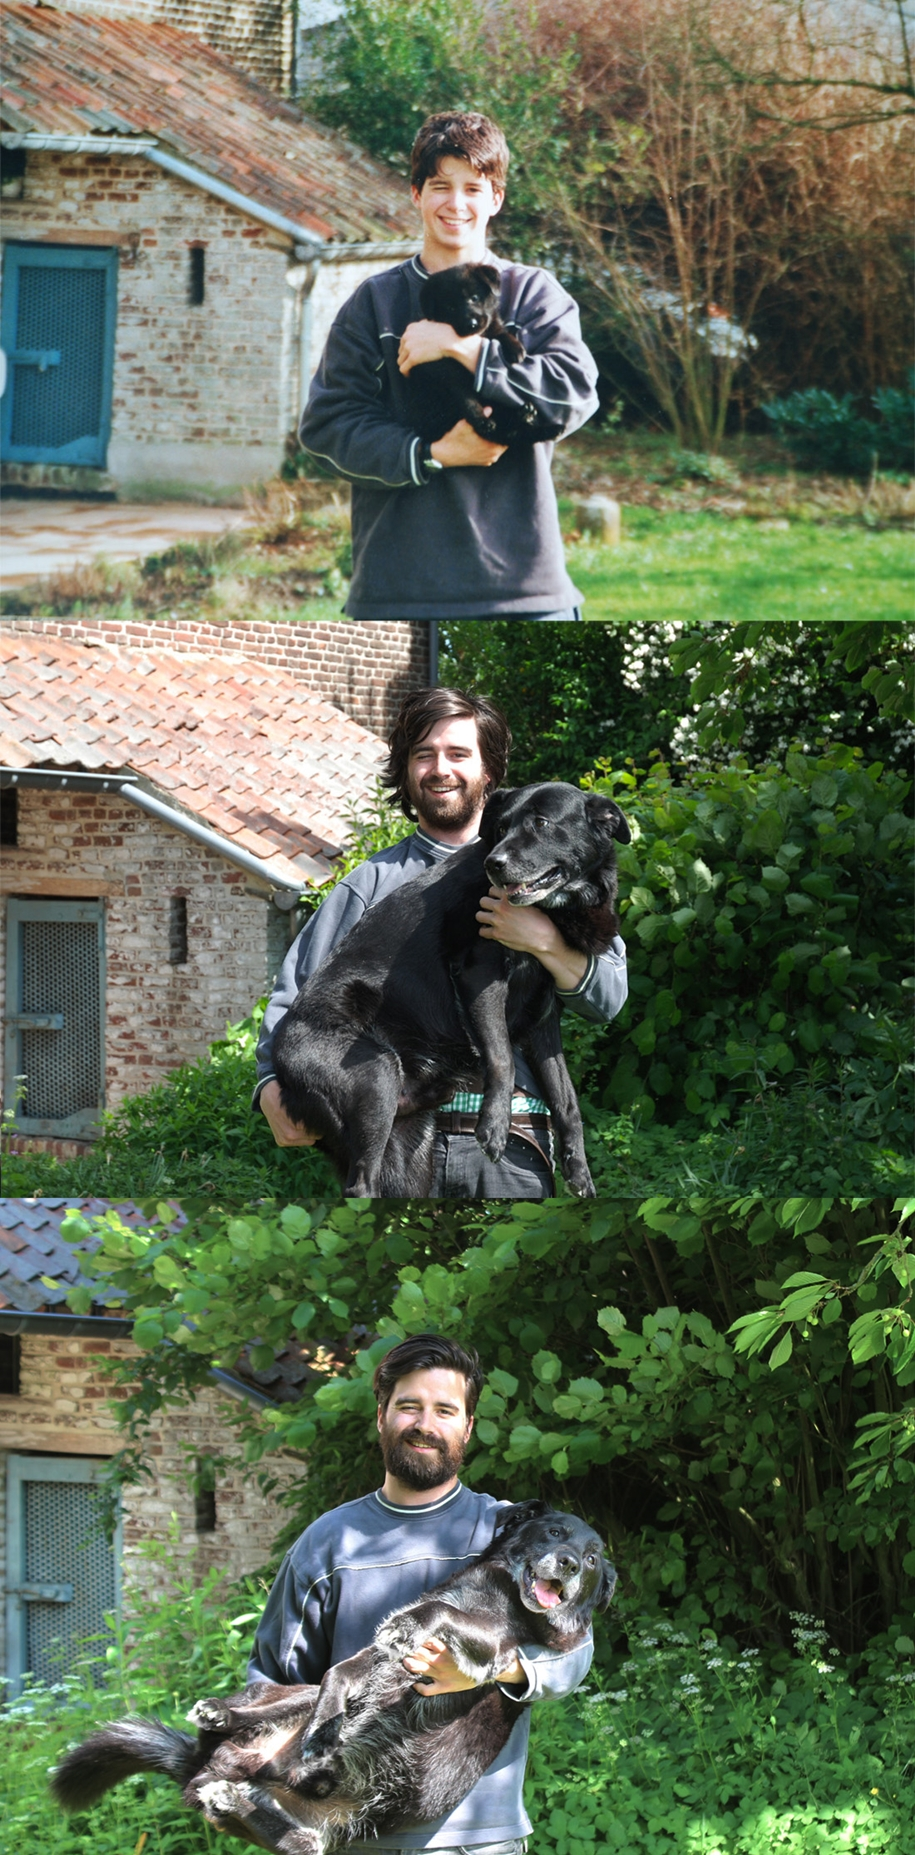 The guy recreated an old photo with his dog, and thereby parted with a friend